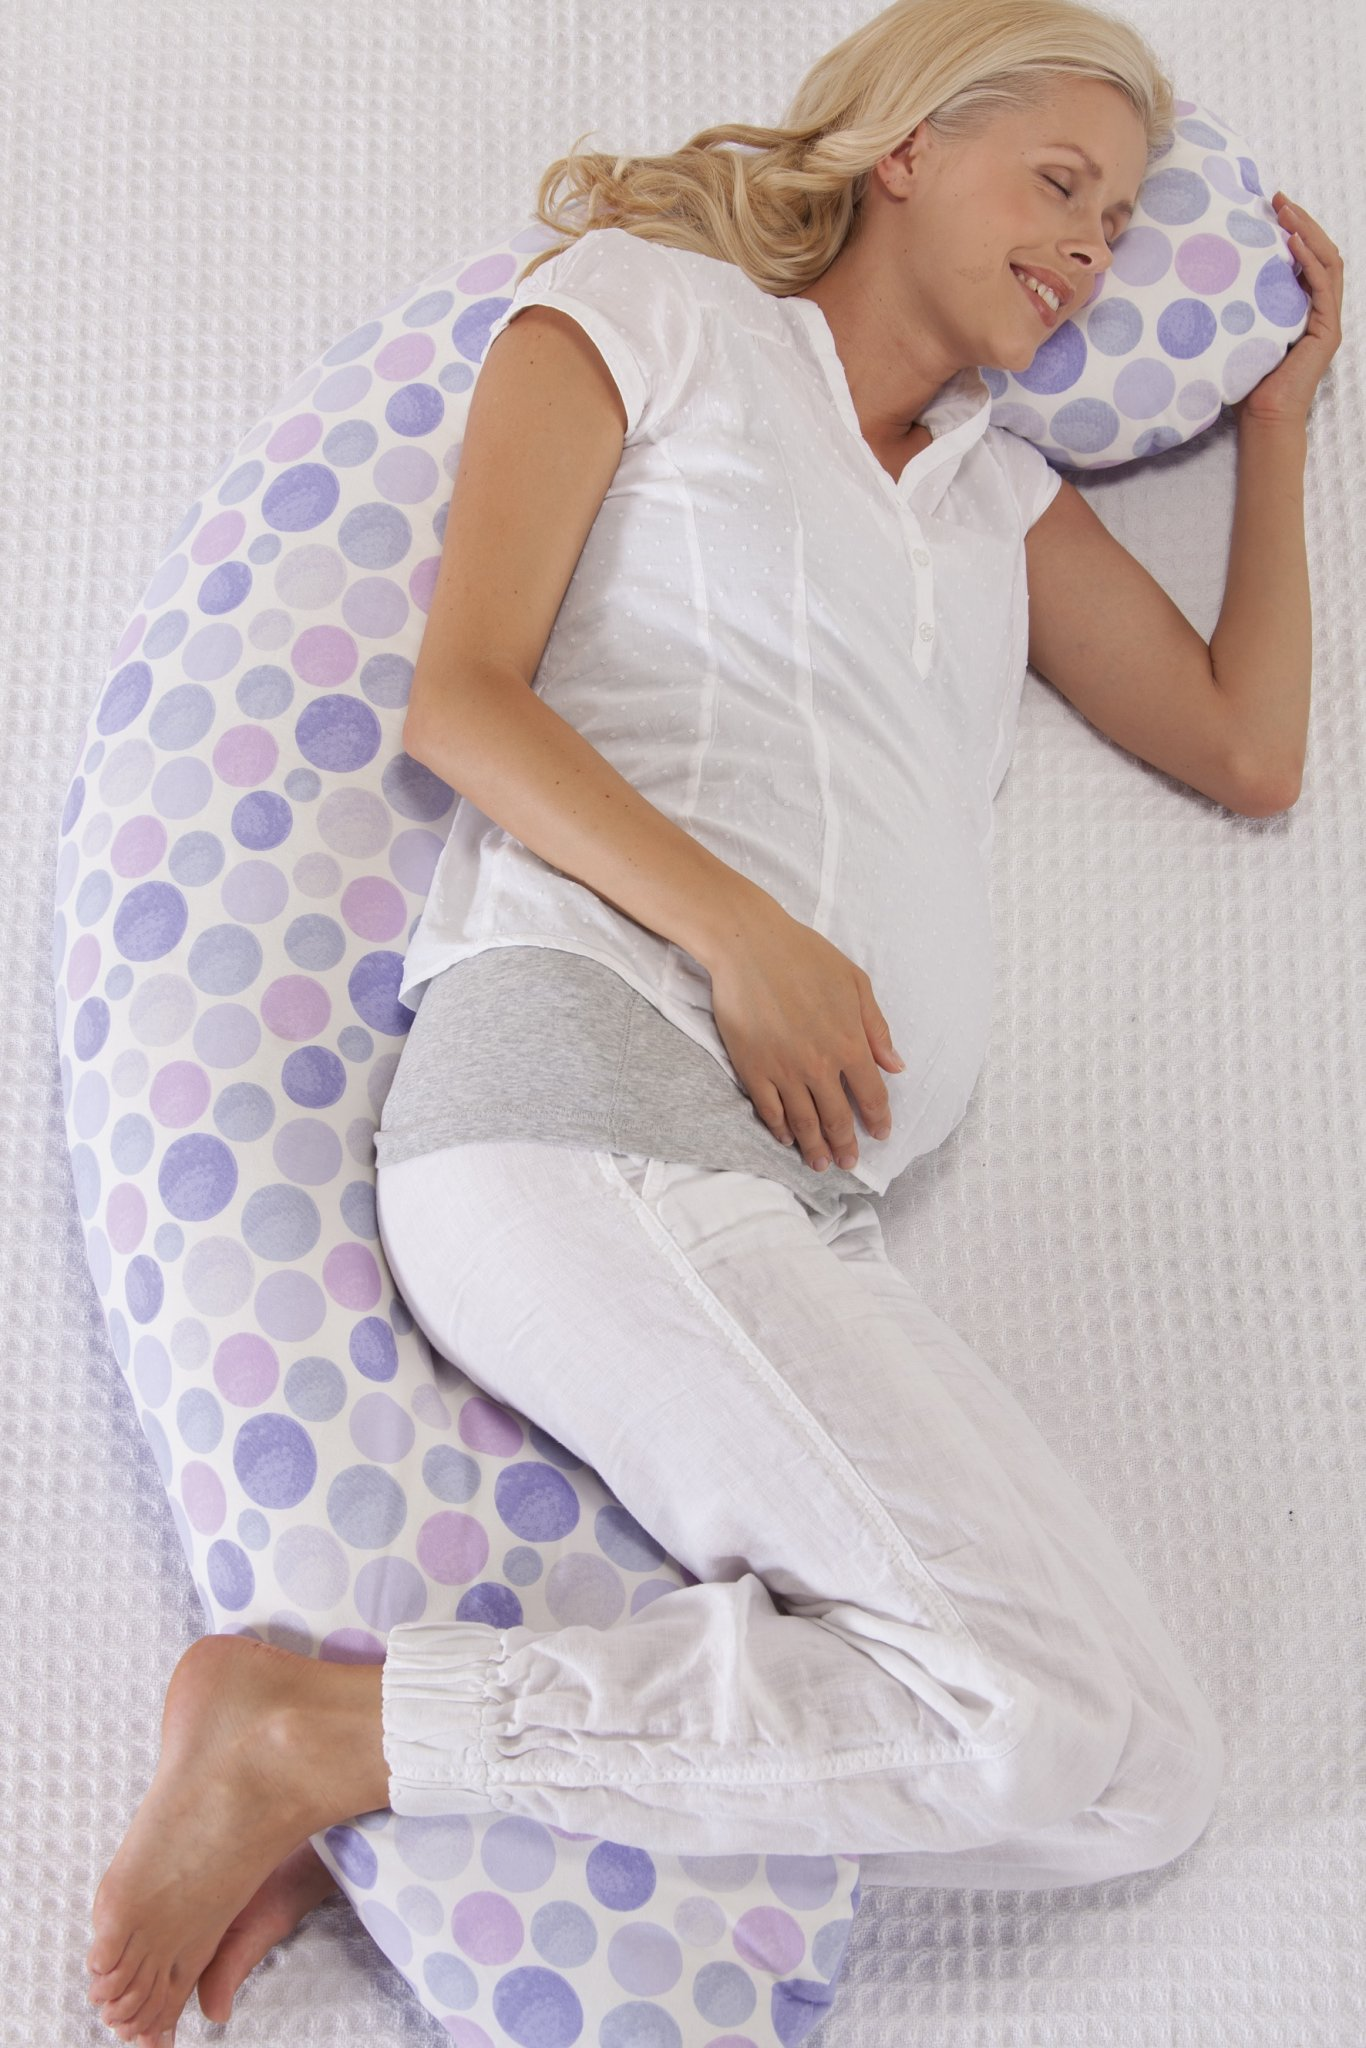 Original Theraline Maternity and Nursing Pillow Review - lovefrommim.com Pregnancy Pillow Maternity Pillow Sleep Discomfort when Pregnant Pregnancy Insomnia How to sleep better when Pregnant